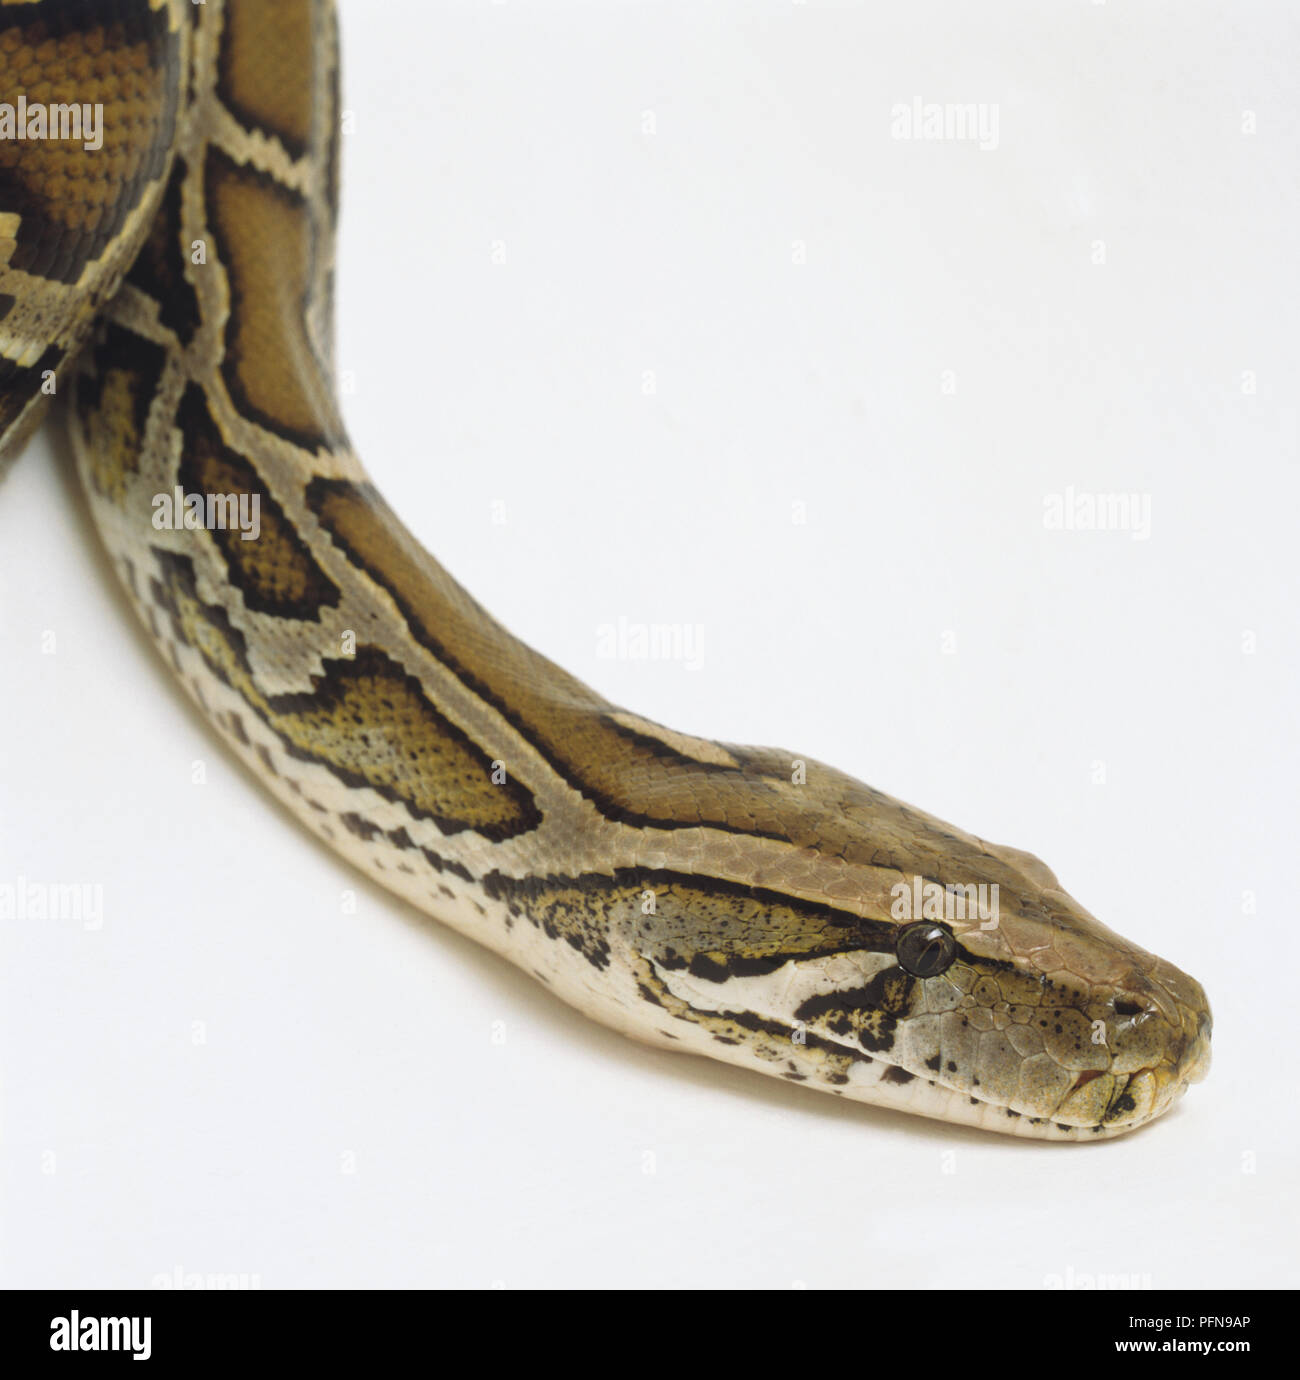 Side View Of The Head Of A Burmese Python Showing The Dark Arrowhead Markings A Wedge Shaped Mark Running From Each Eye To The Angle Of The Jaw Another Below Each Eye And